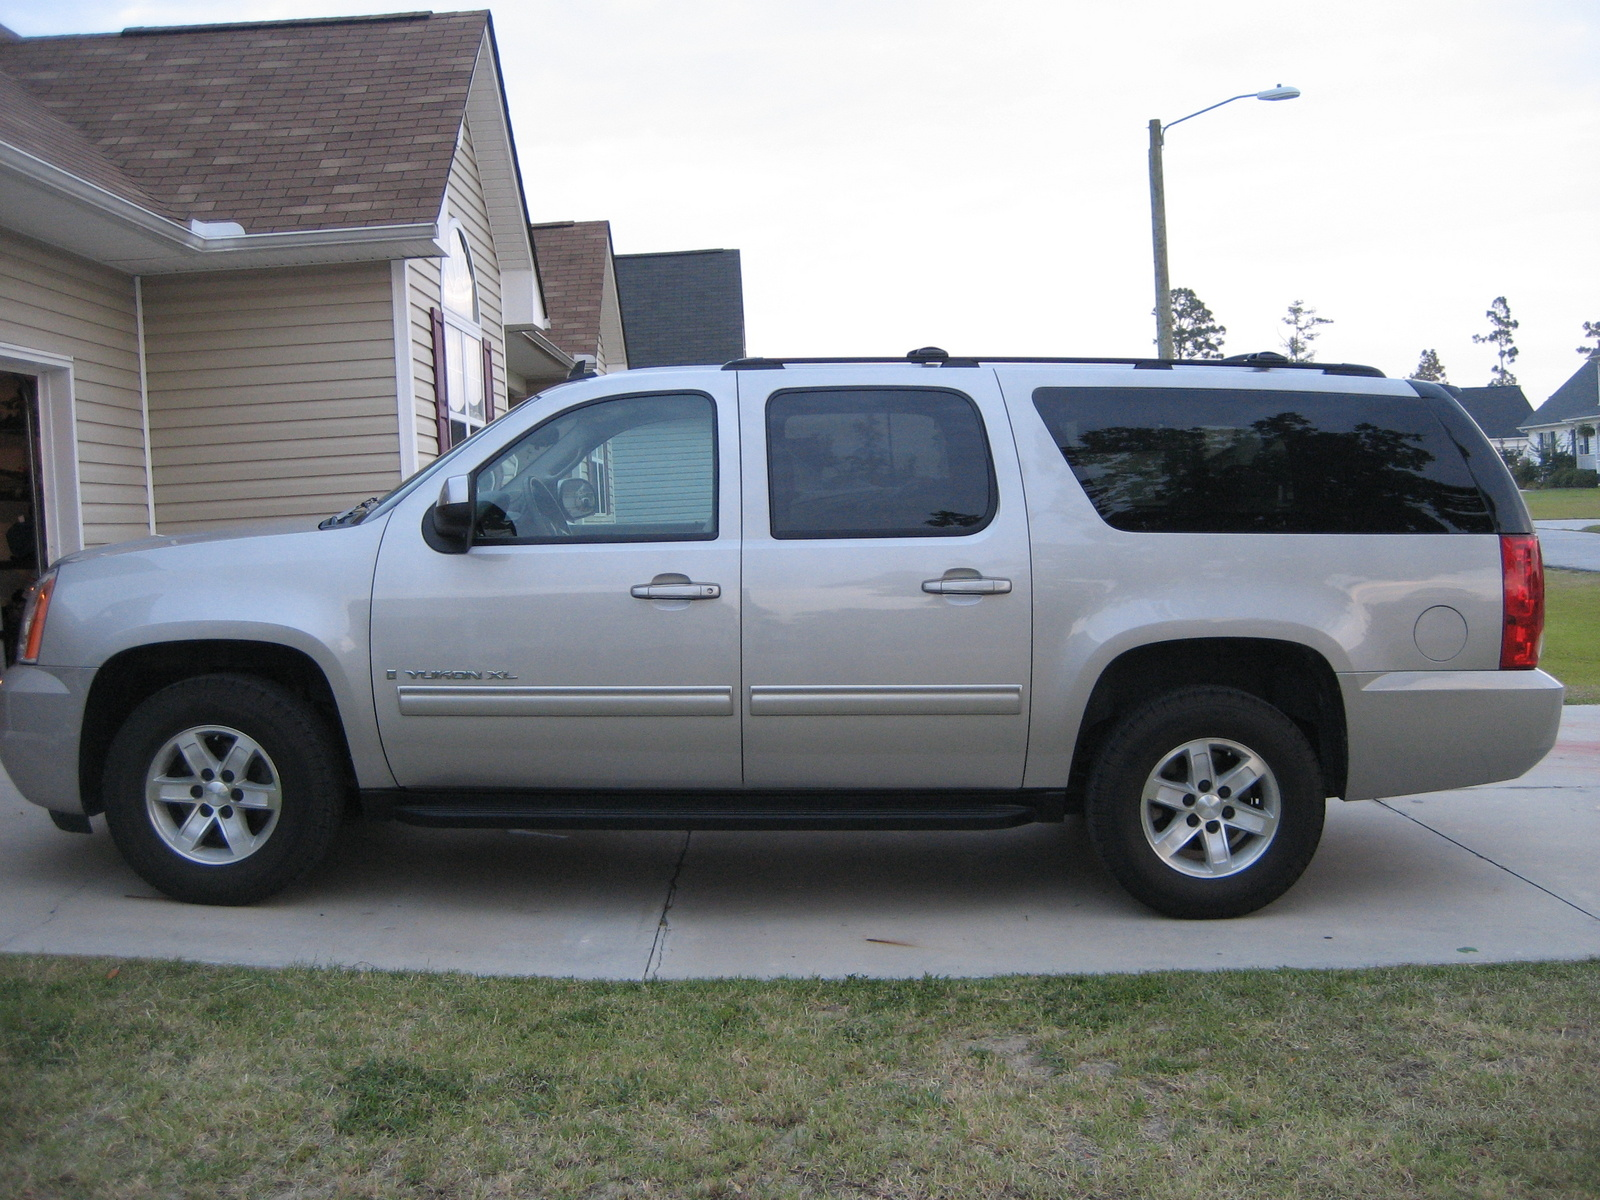 2009 Gmc truck towing capacity